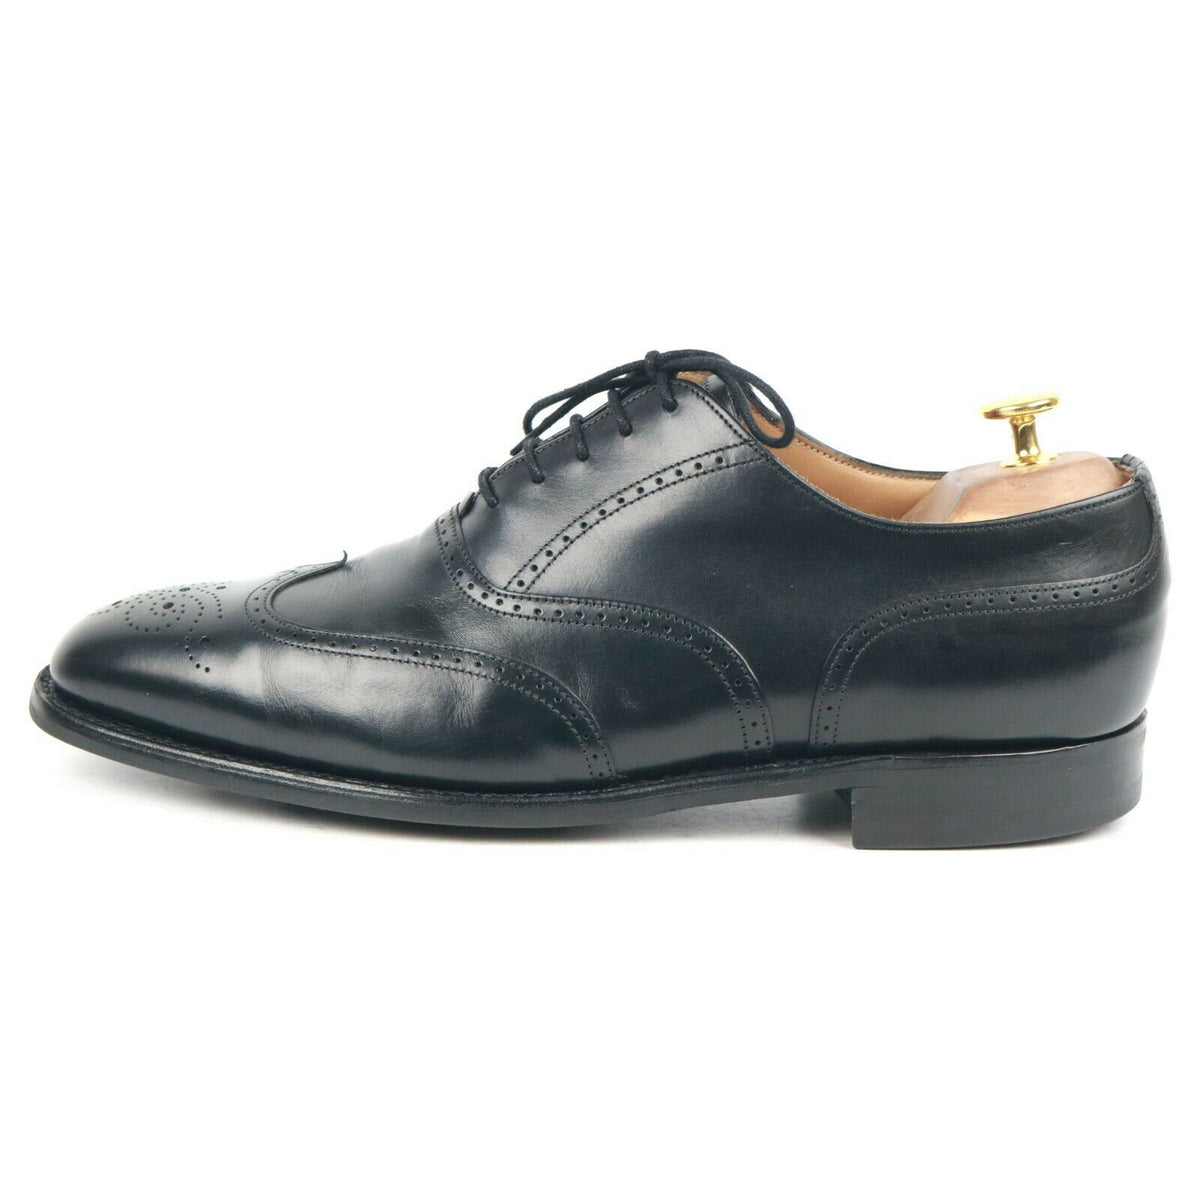 Cheaney 'Loddington R' Black Brogues Leather Men's Shoes UK 10 F